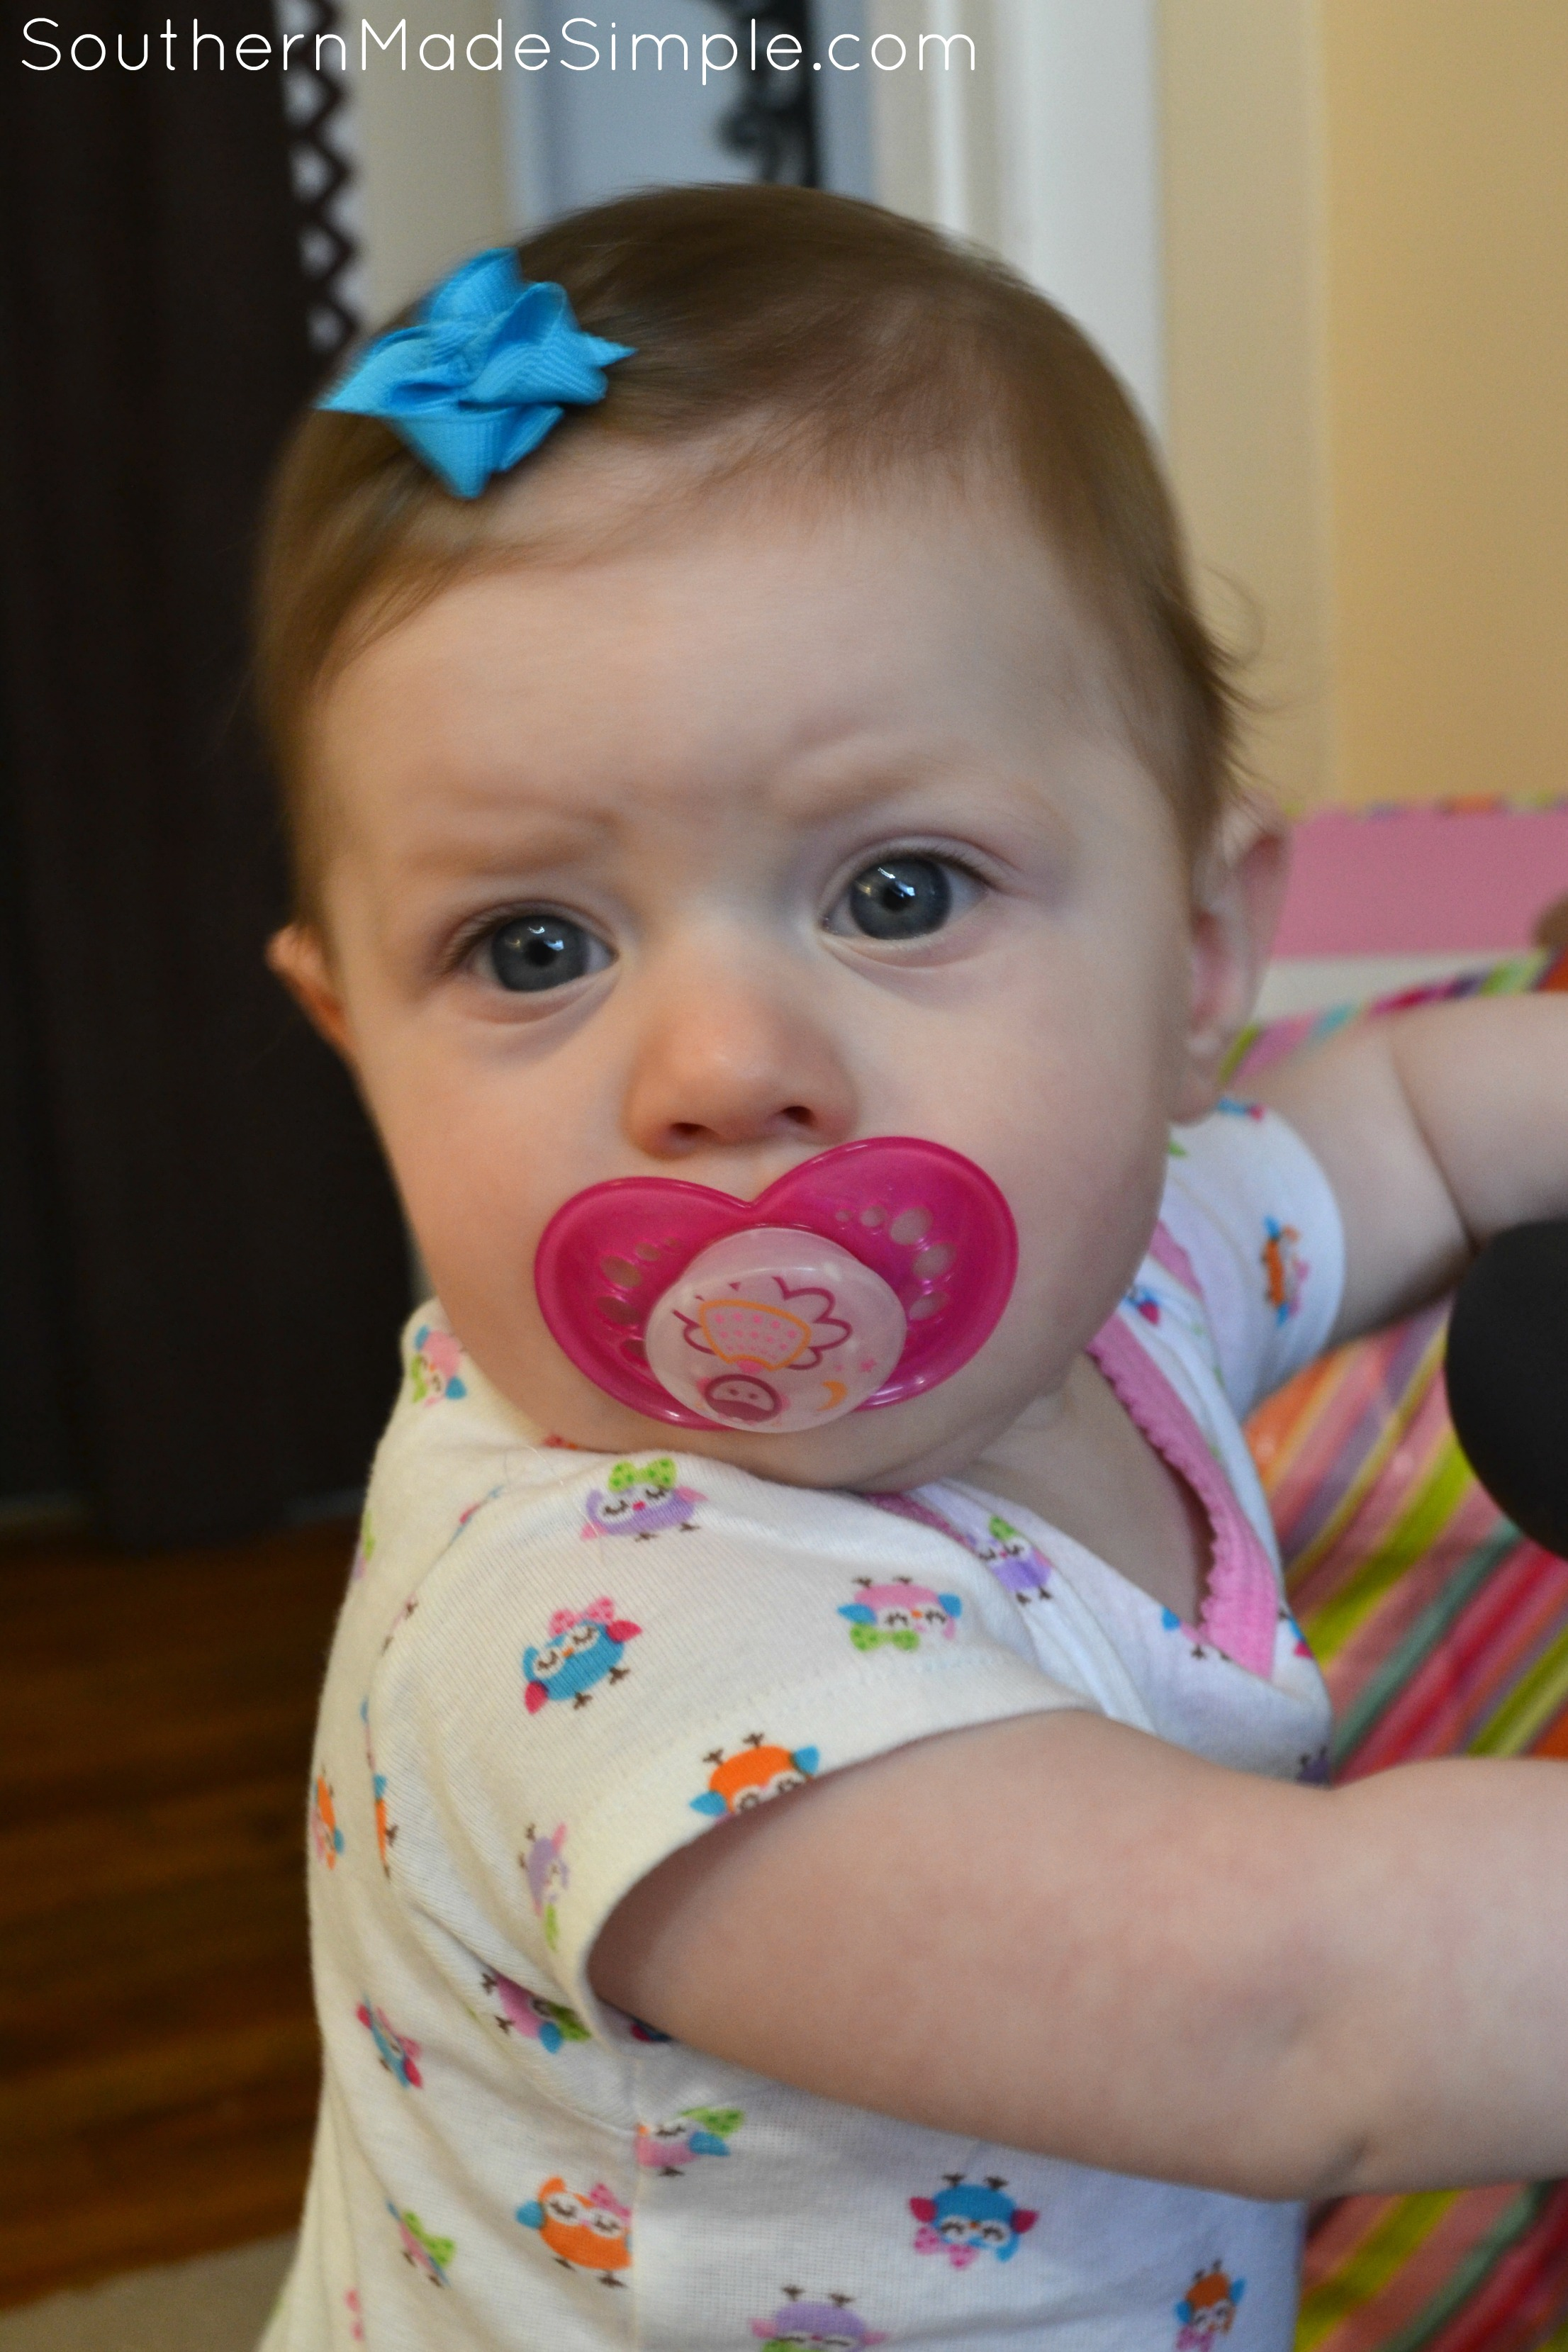 MAM - It's more than just pacifiers! Review + Giveaway Ends 4/1/16